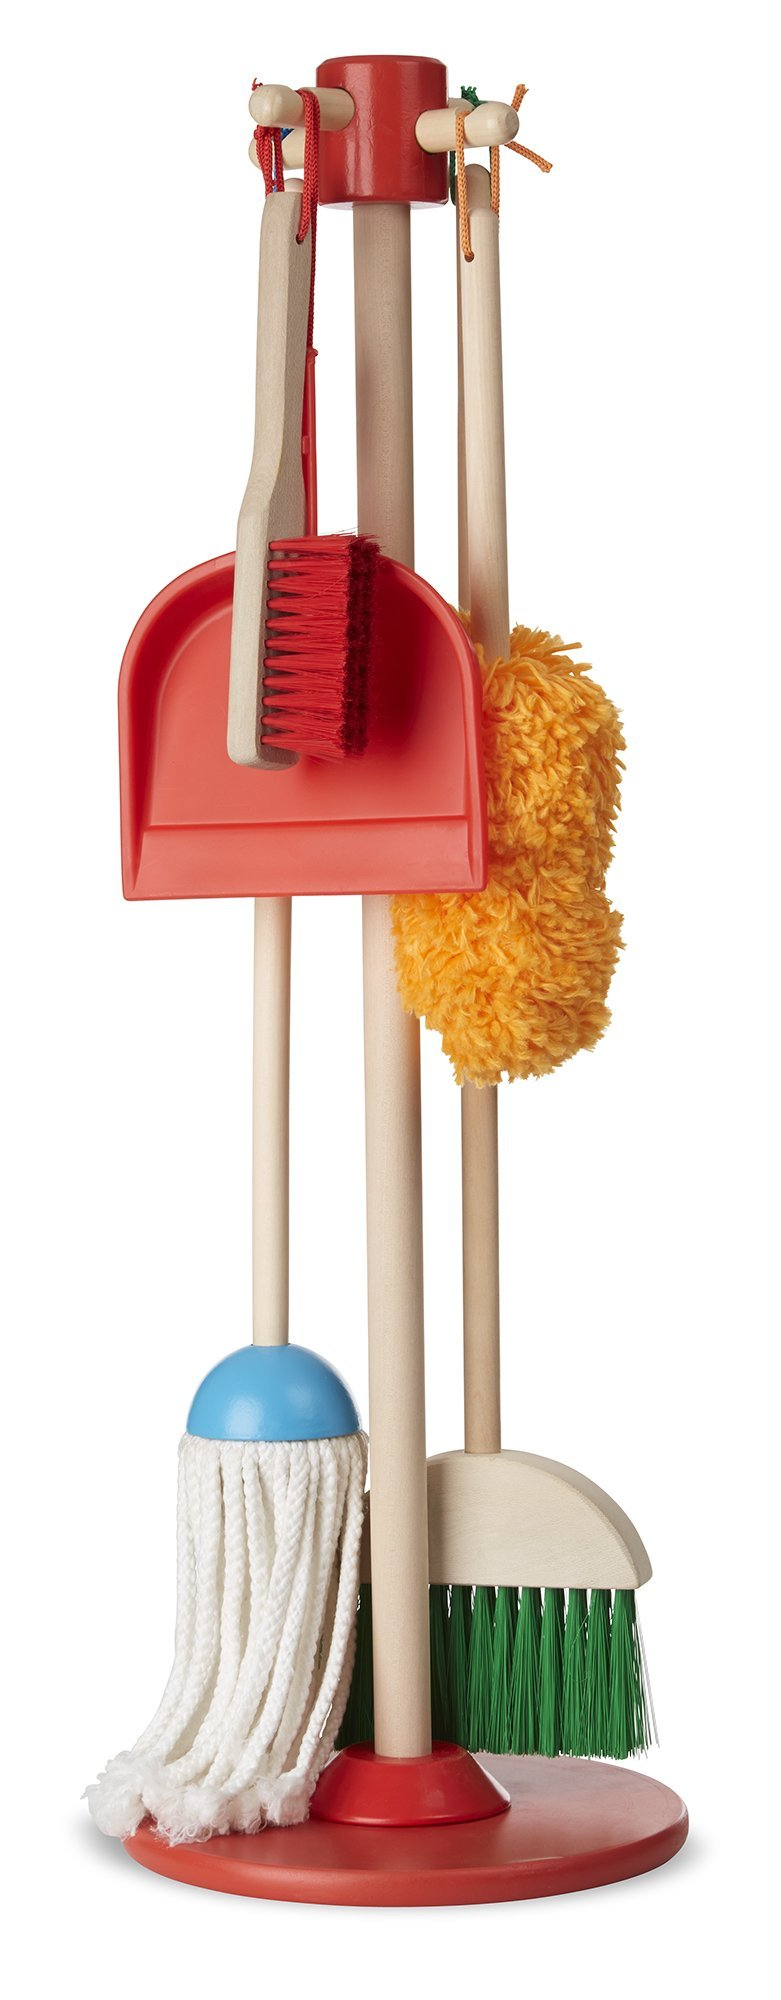 Melissa & Doug Let's Play House! Dust Sweep And Mop 12